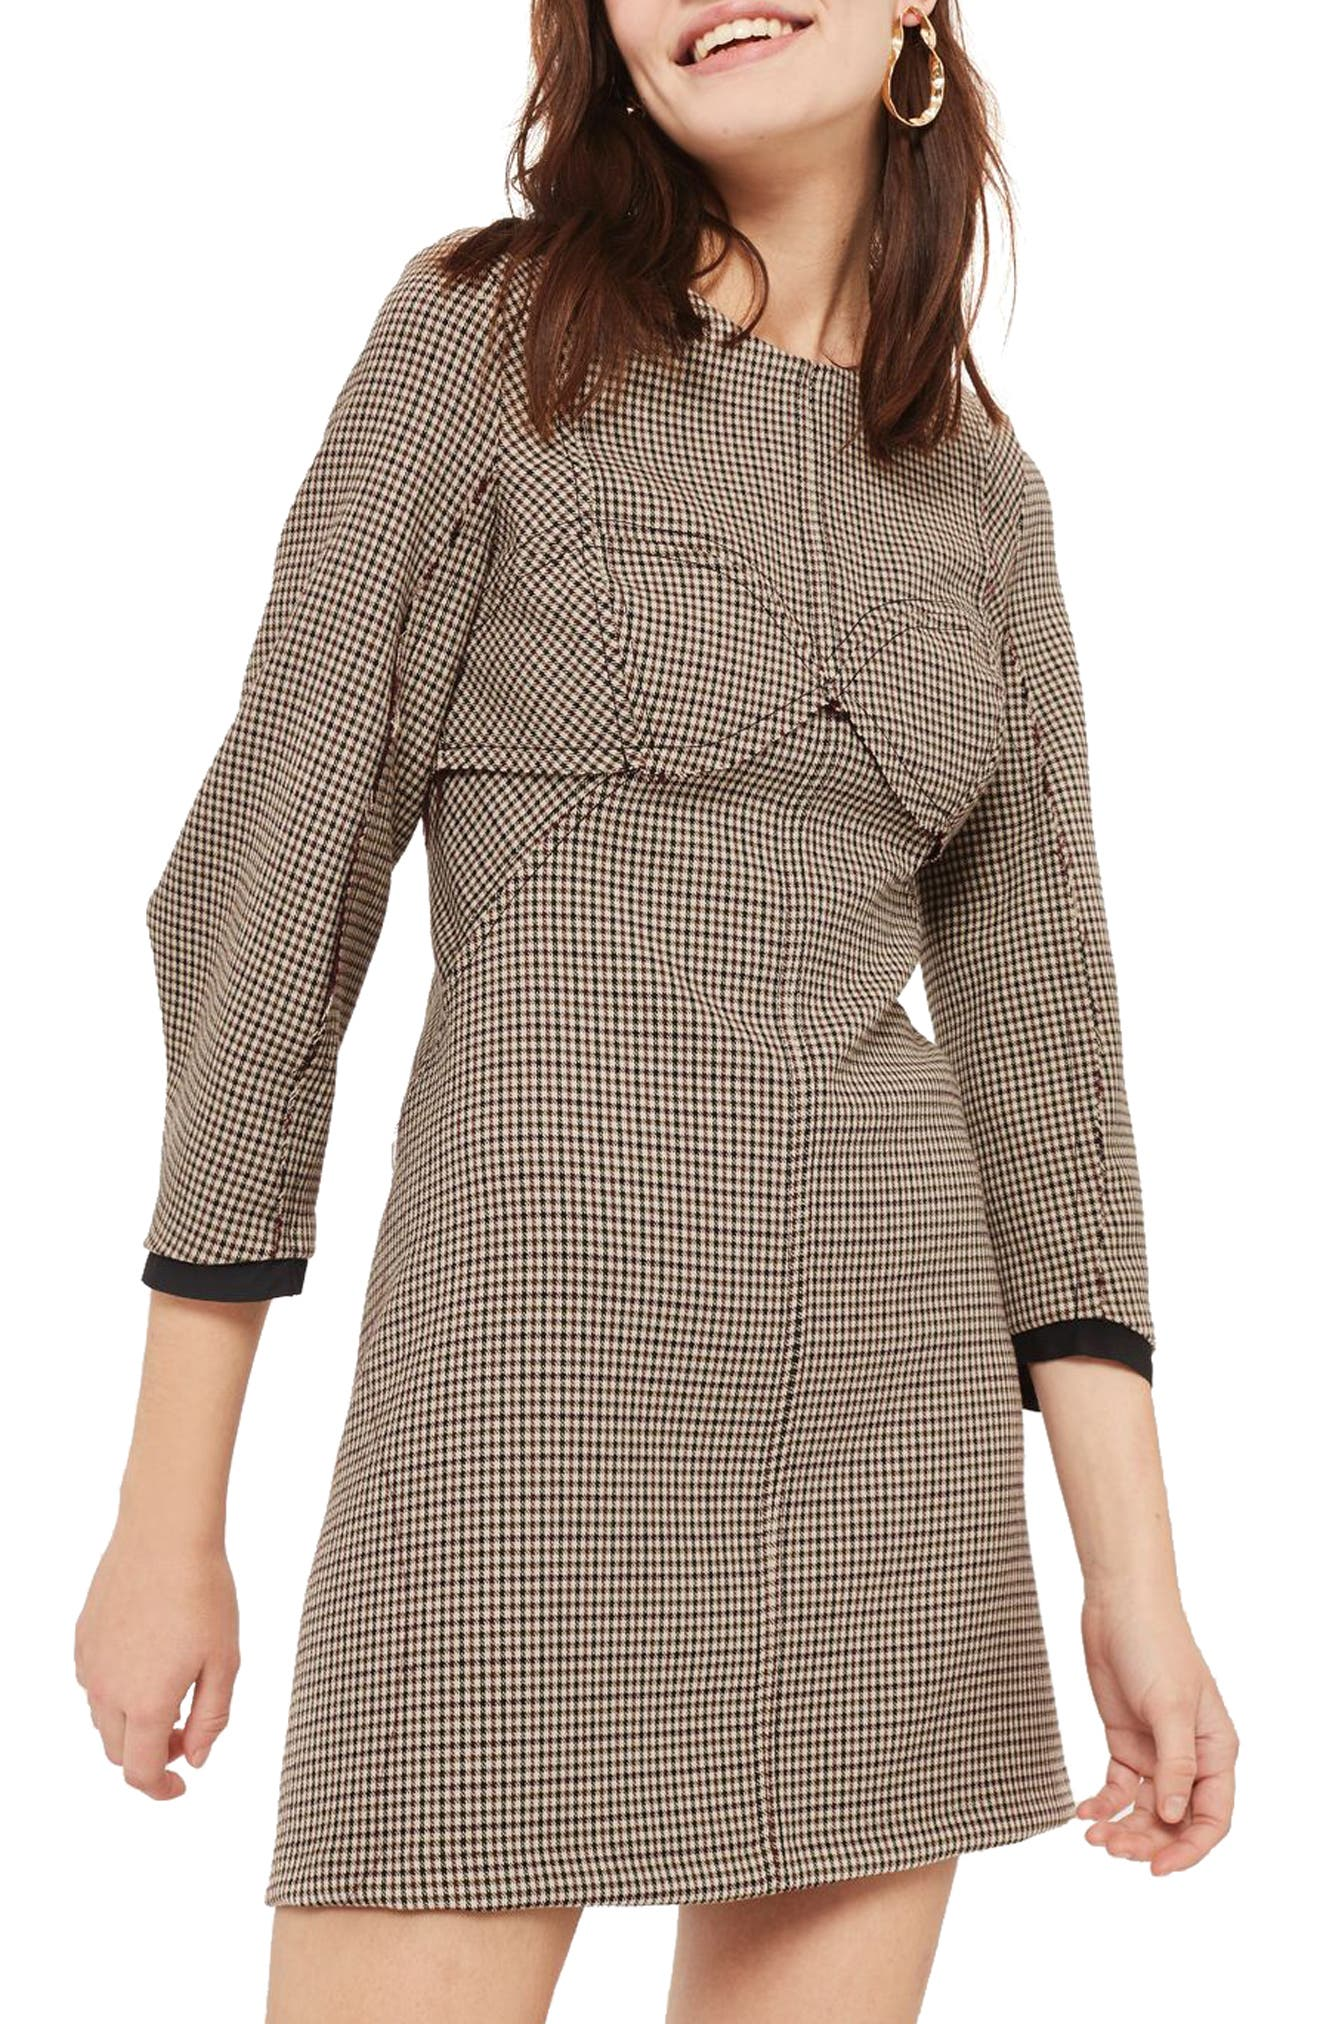 Topstitch Check Shift Dress,                         Main,                         color, 210